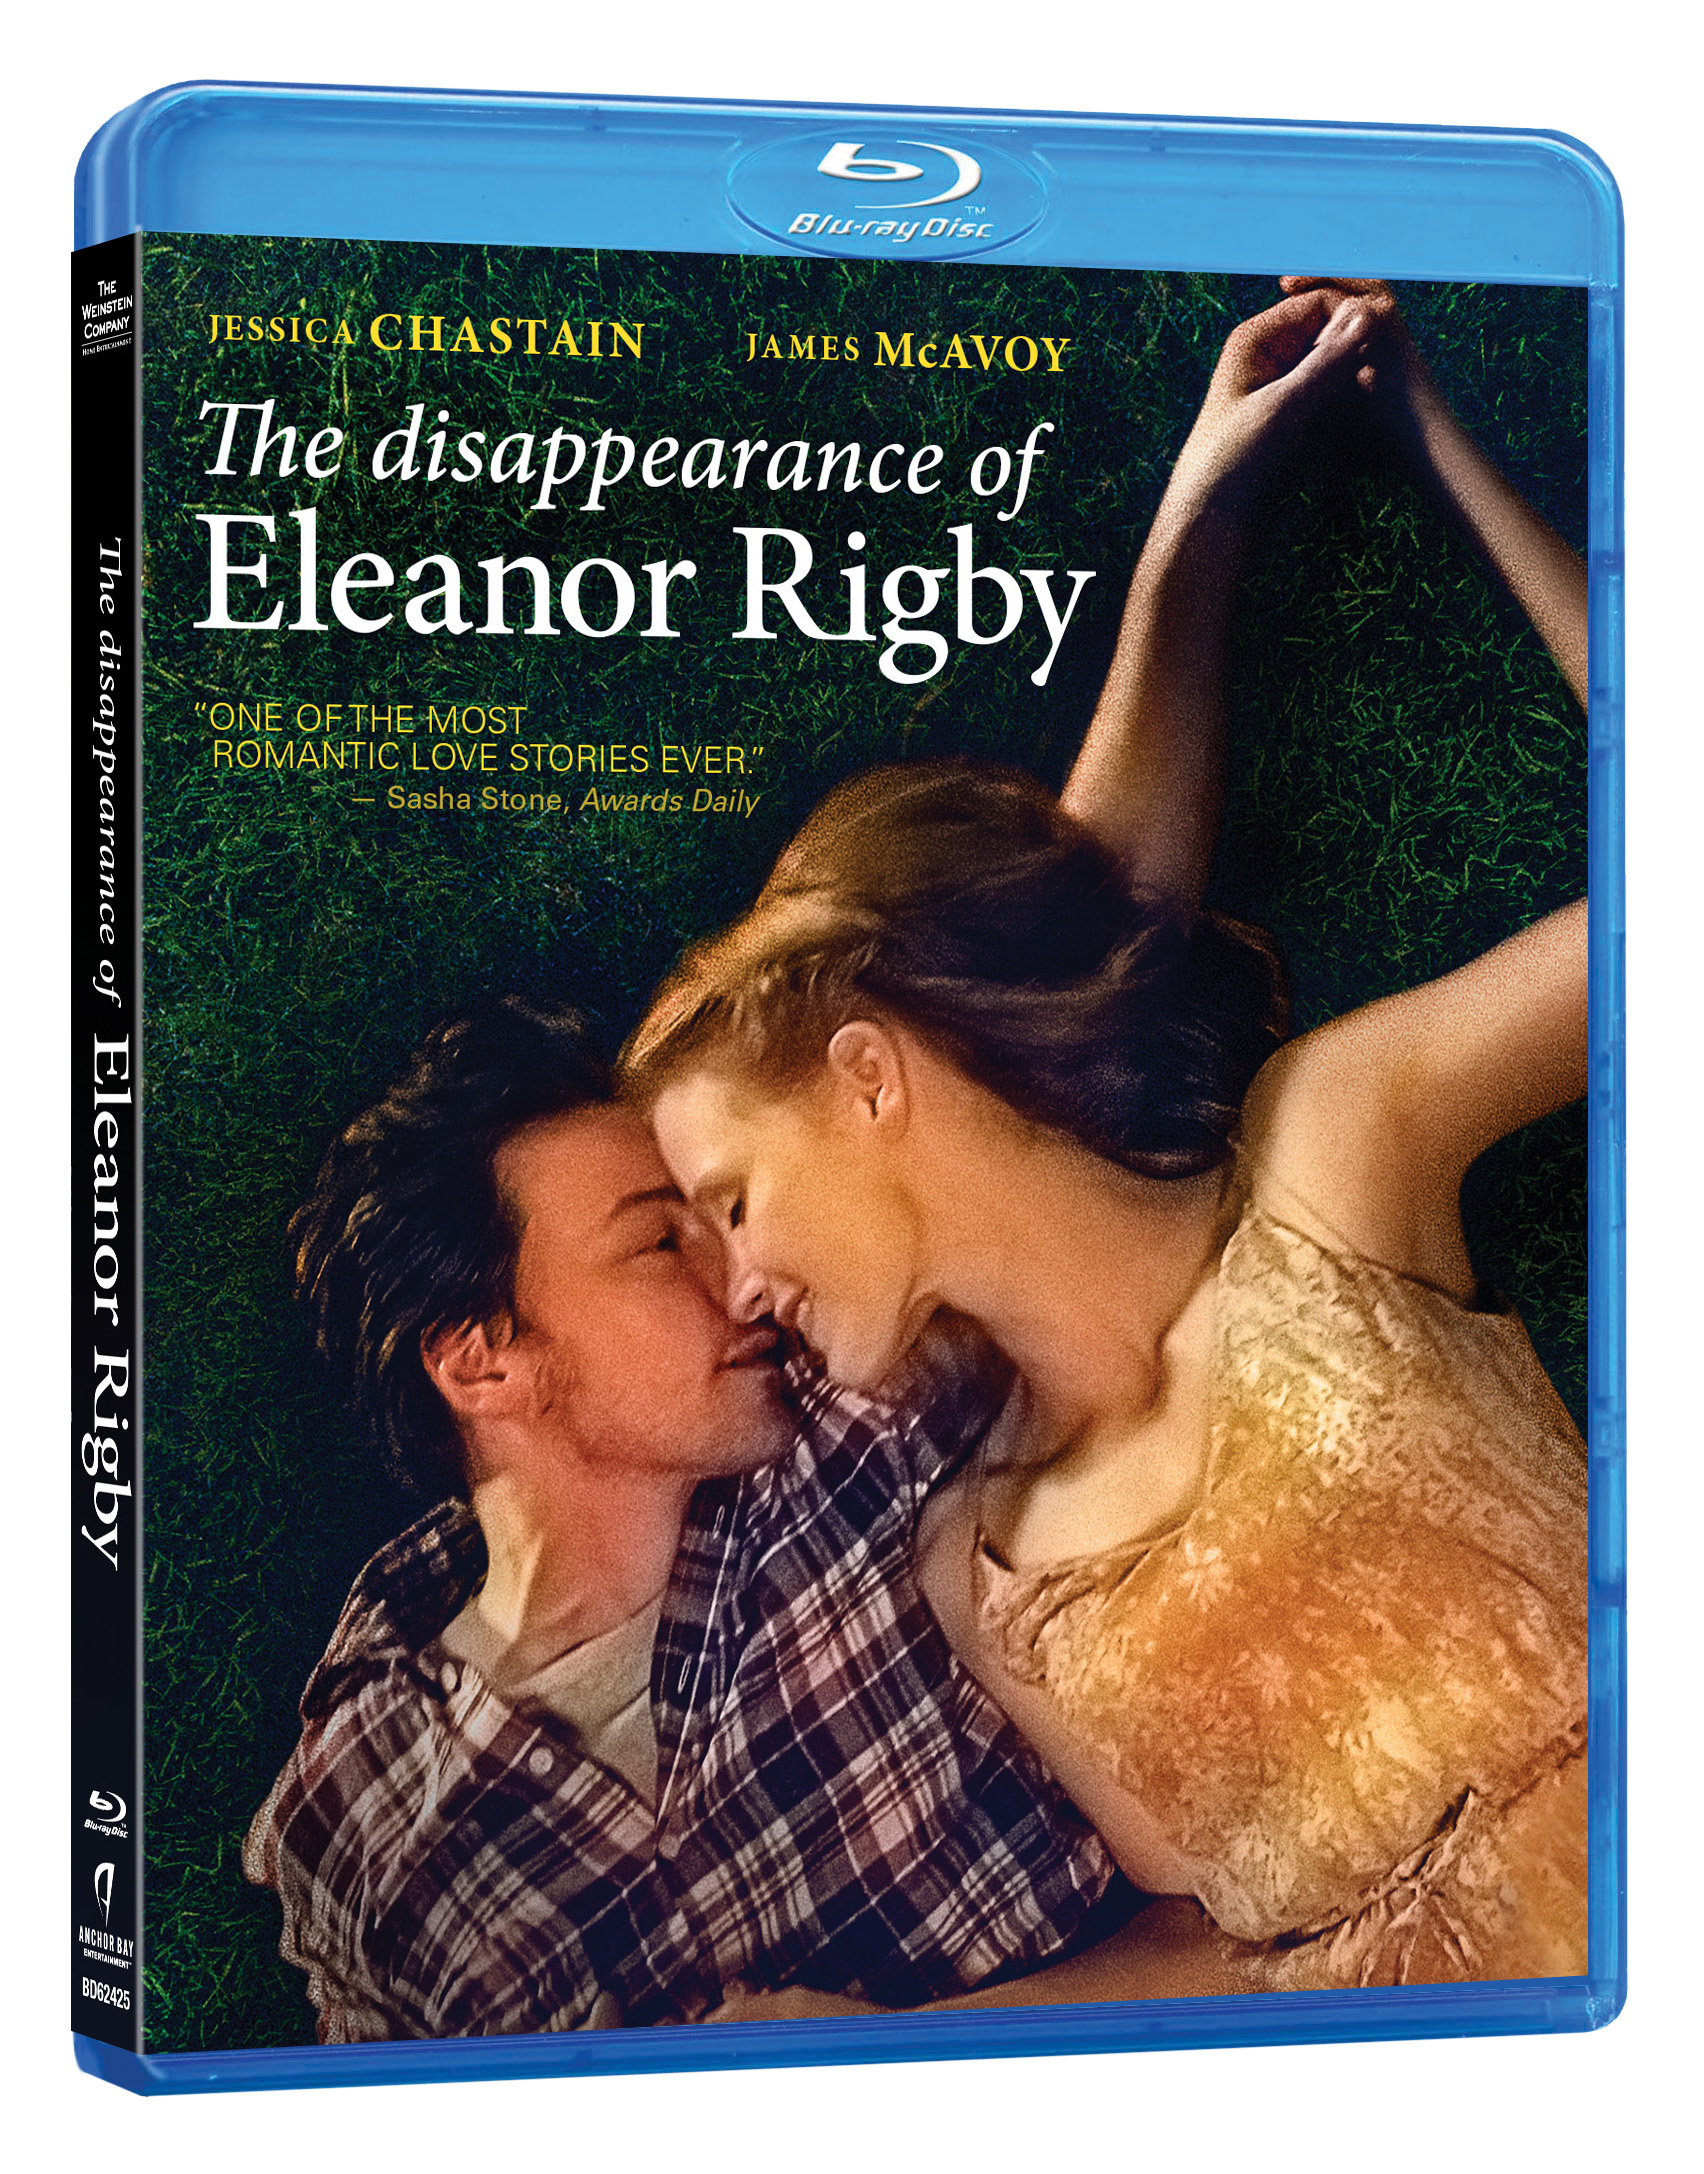 The Disappearance Of Eleanor Rigby Blu-ray Review